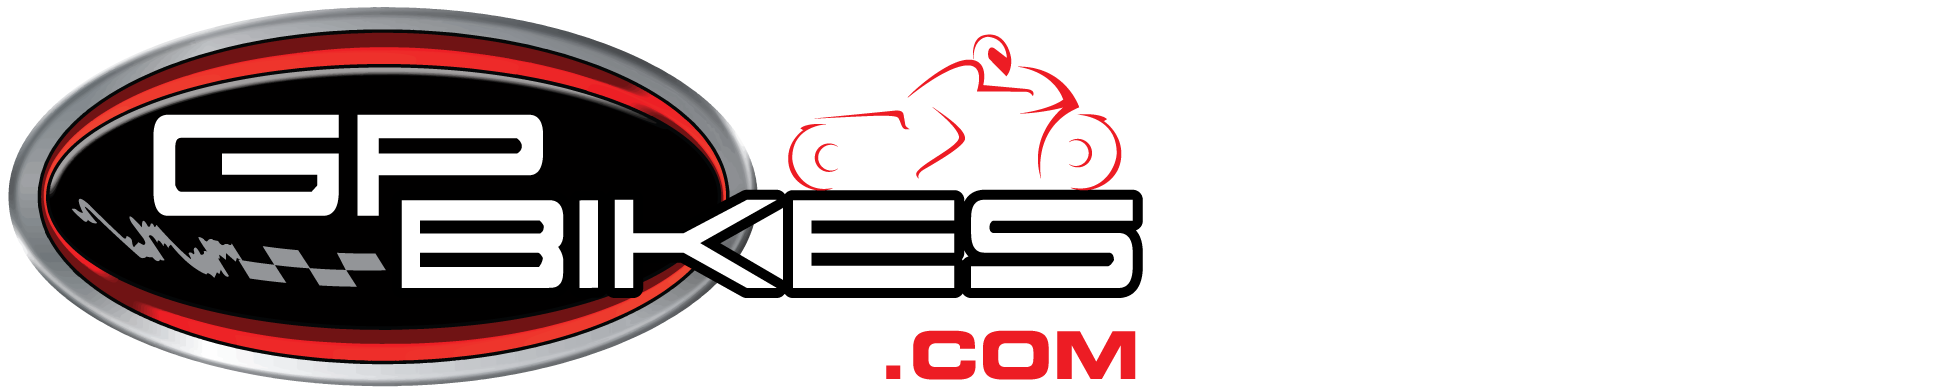 gpbikes.com - Your Powersports Authority